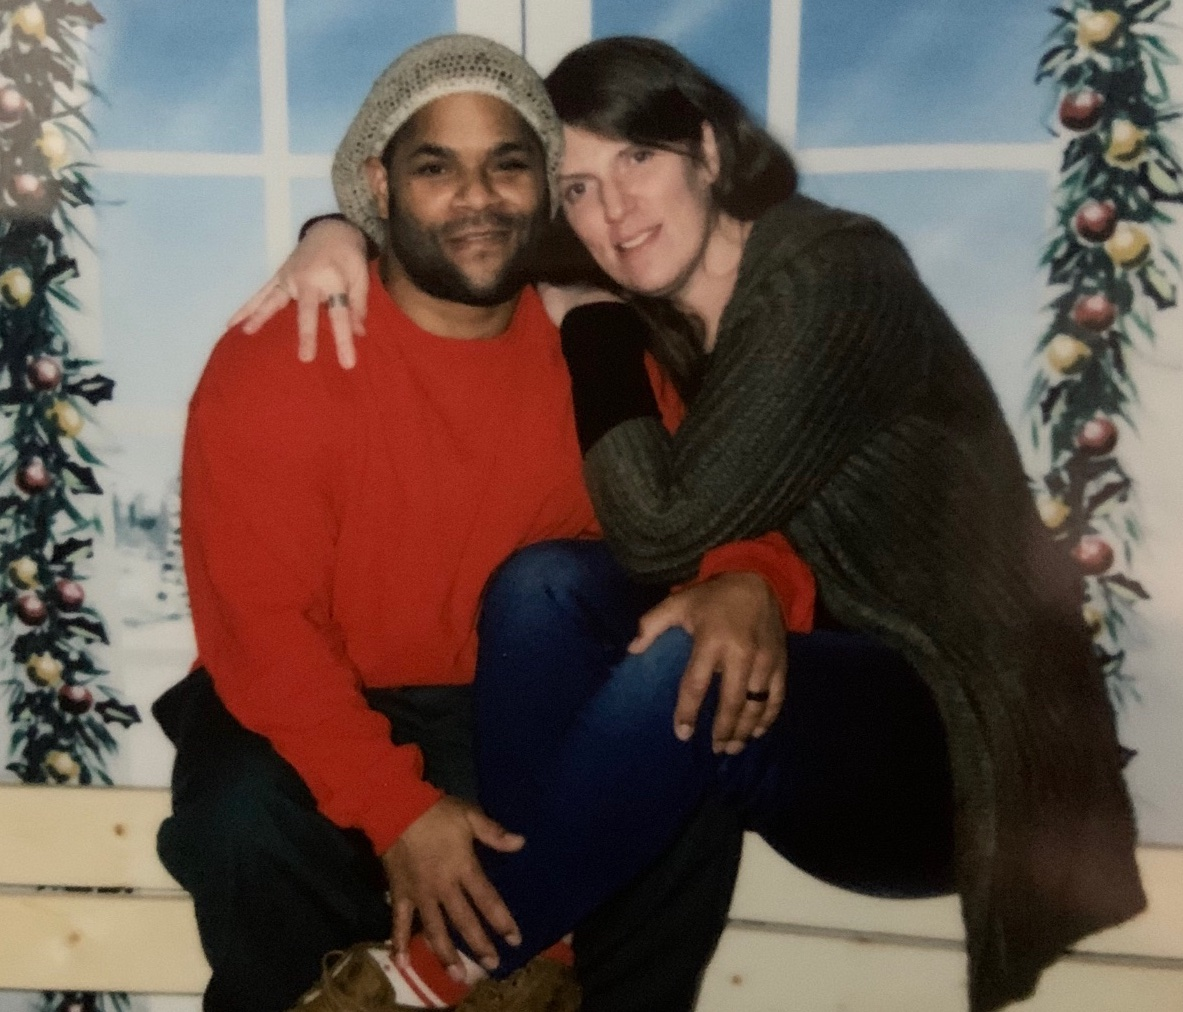 While COVID-19 Spreads In NY Prisons, Loved Ones On The Outside Plead With Cuomo For Clemency